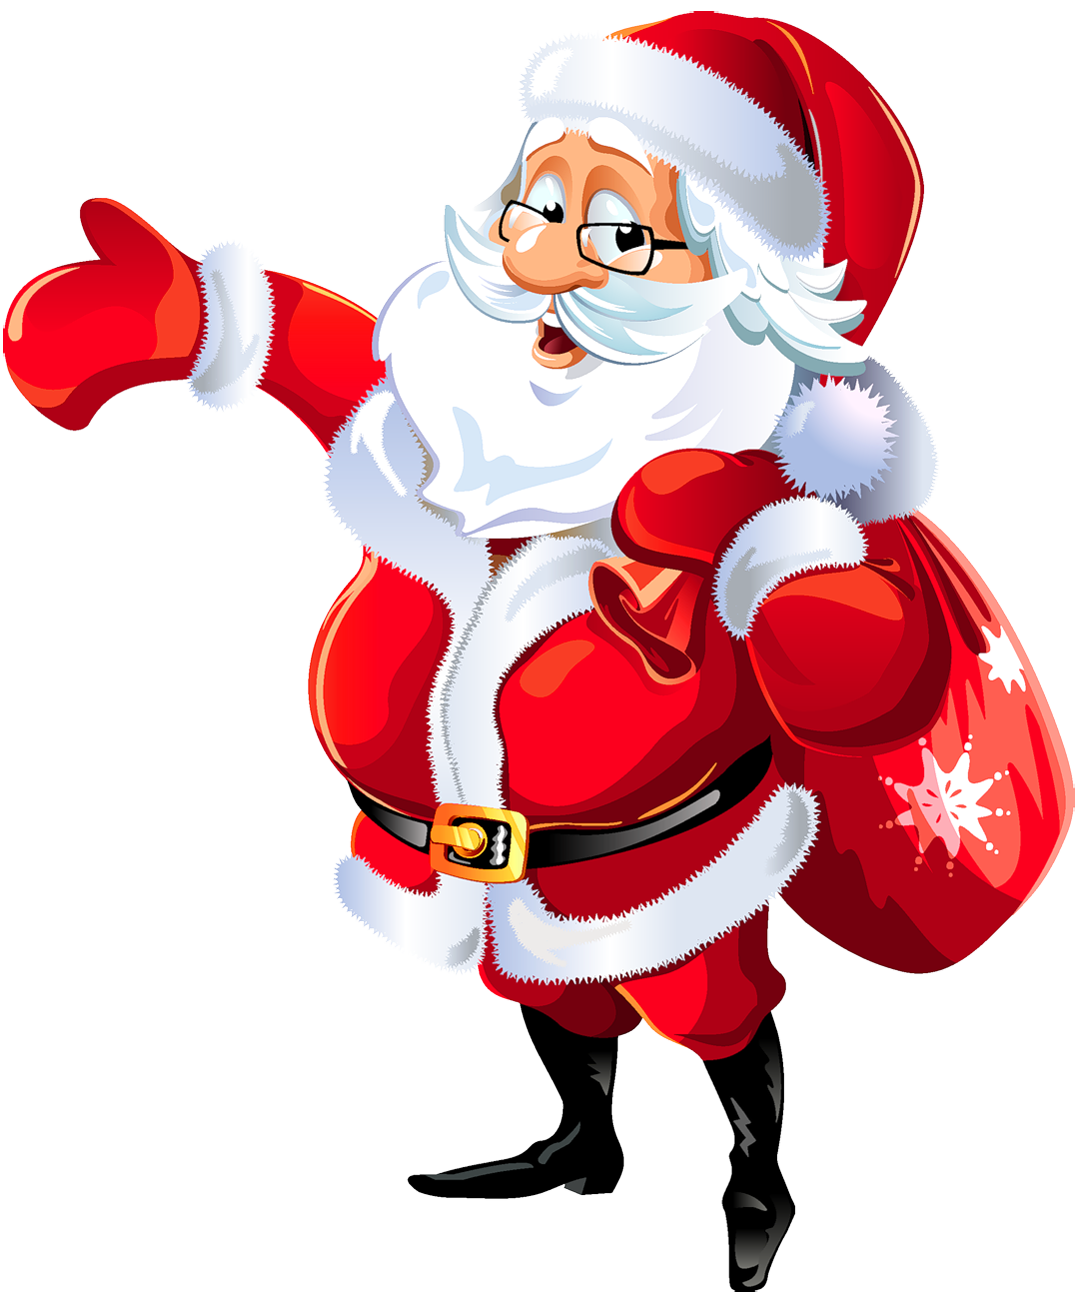 Santa clipart transparent background #10